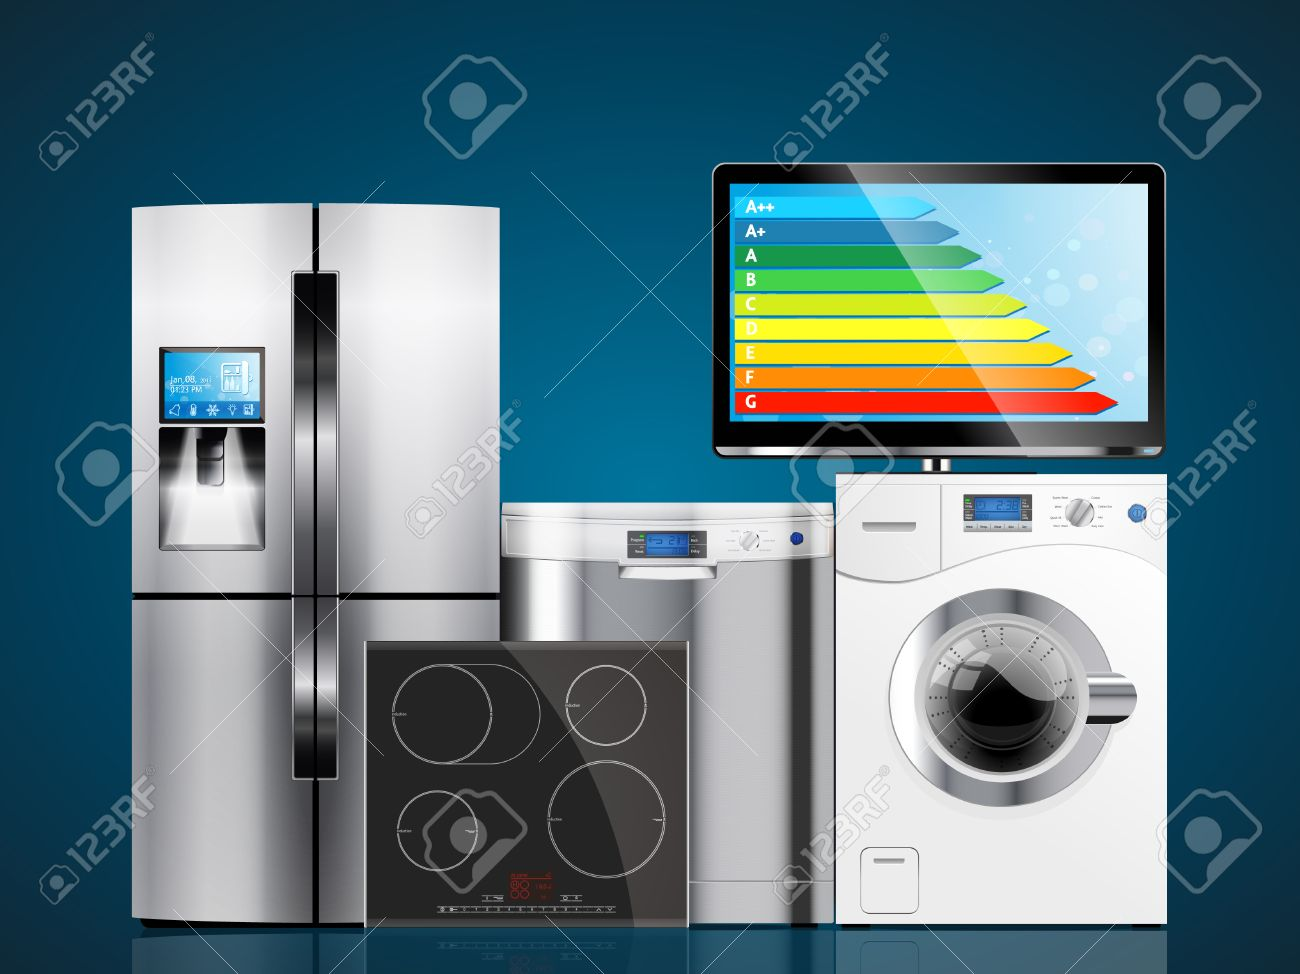 Kitchen And House Appliances: Microwave, Washing Machine ...